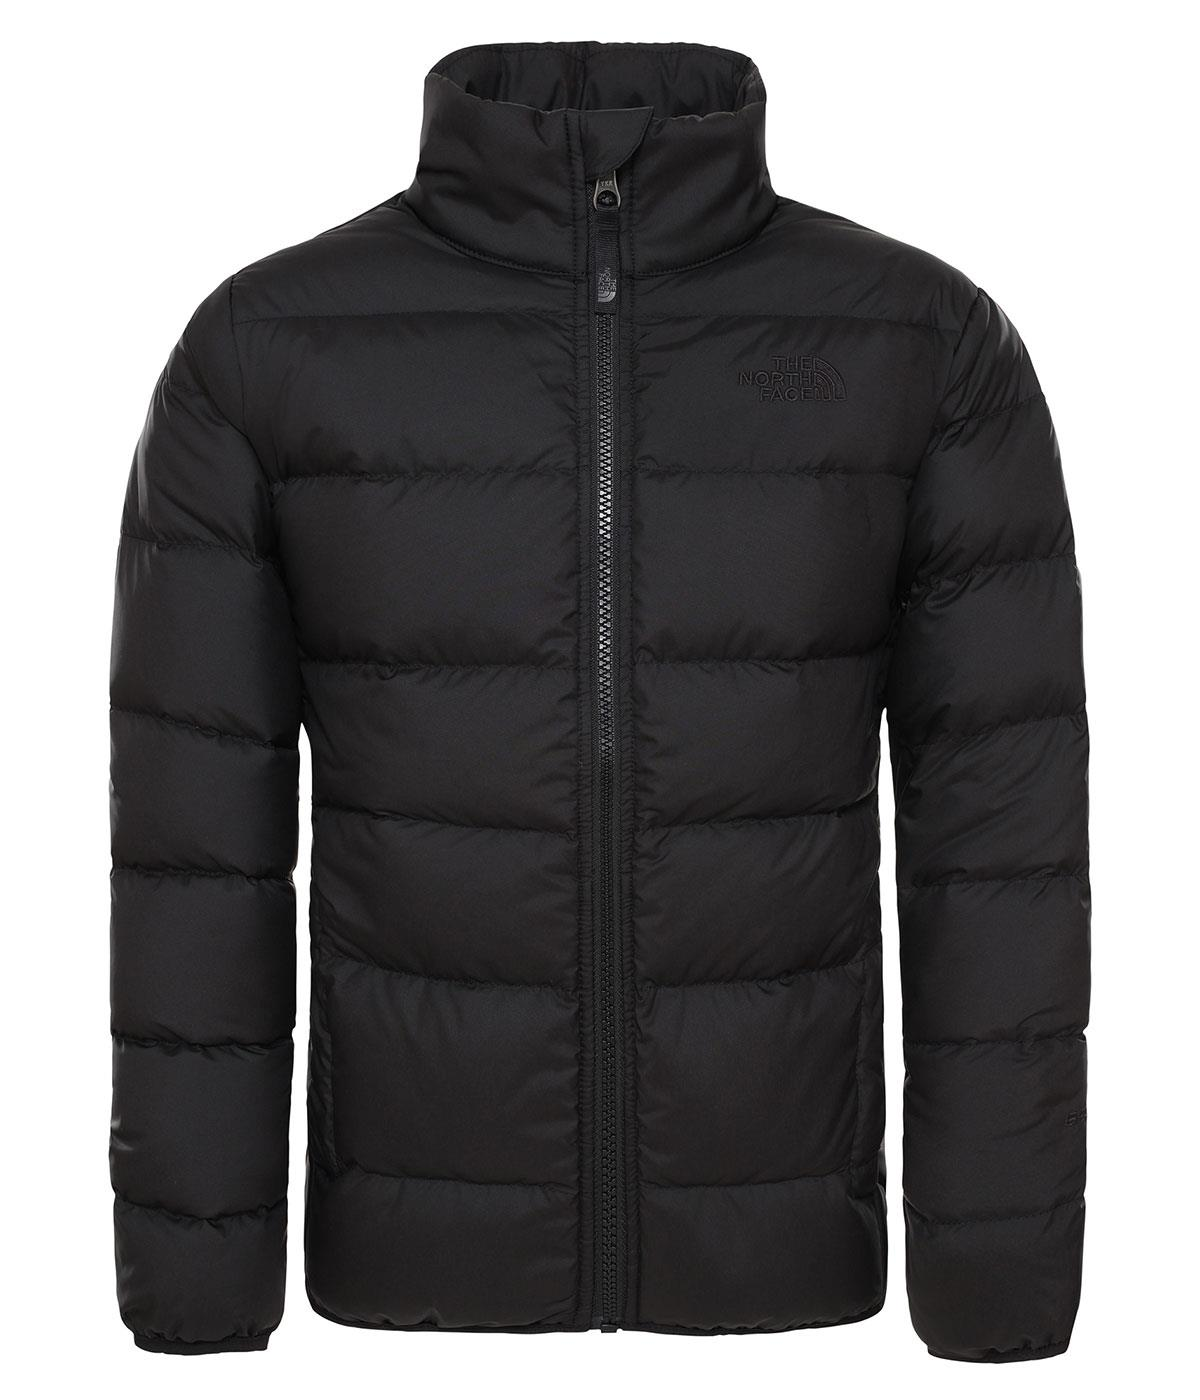 The Northface B Andes Ceket Nf00Chq6Kx81